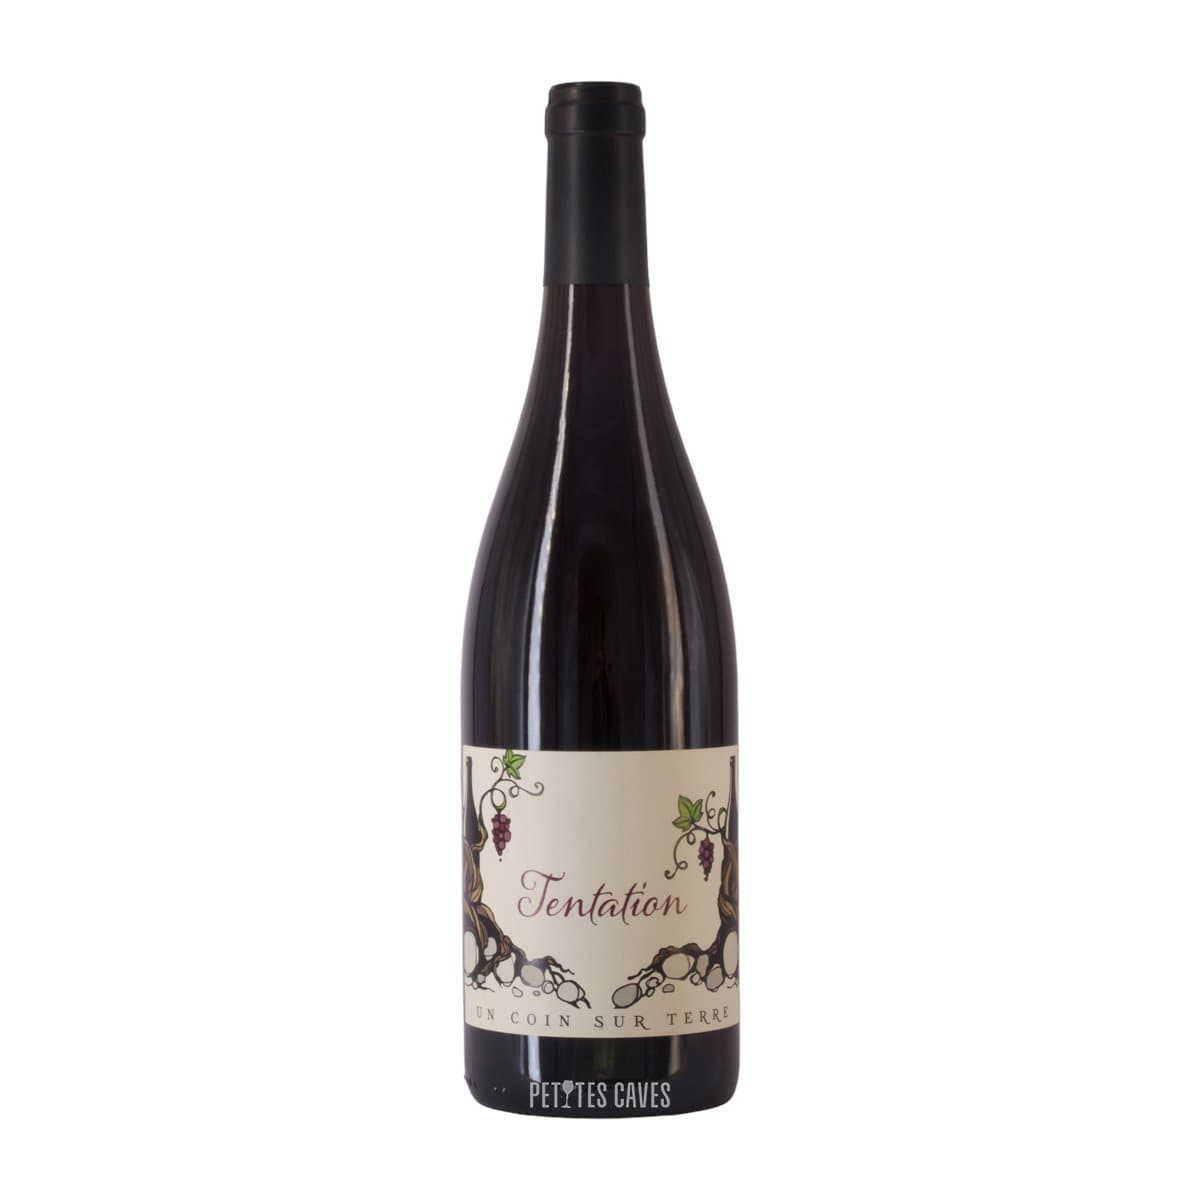 Organic red wine from the Rhône, cuvée Tentation 2019 red - A coin sur Terre - Edouard and Lane Sentex